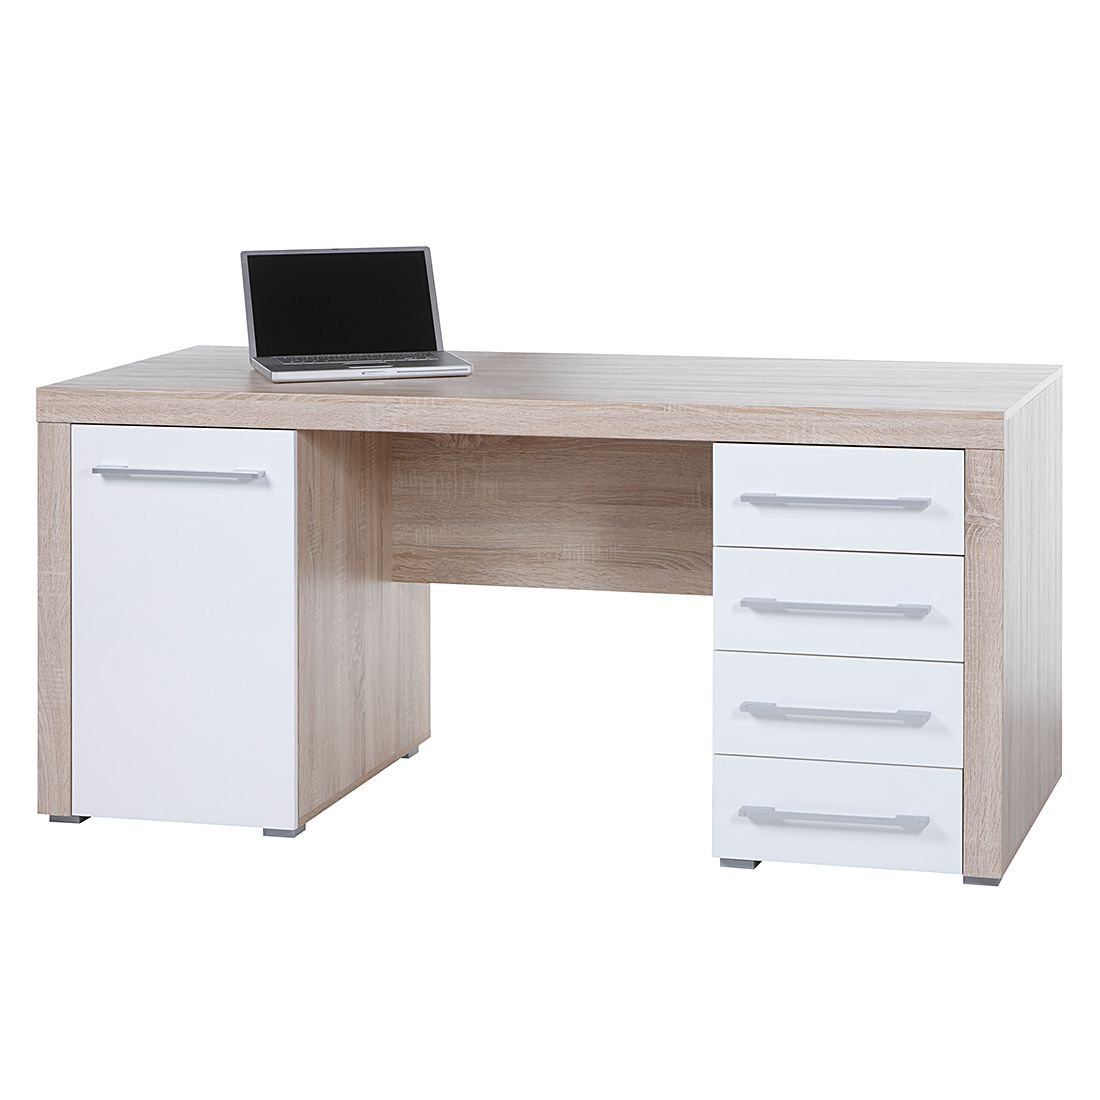 Bureau teshie hoogglans wit home24 office in de aanbieding for Home24 office